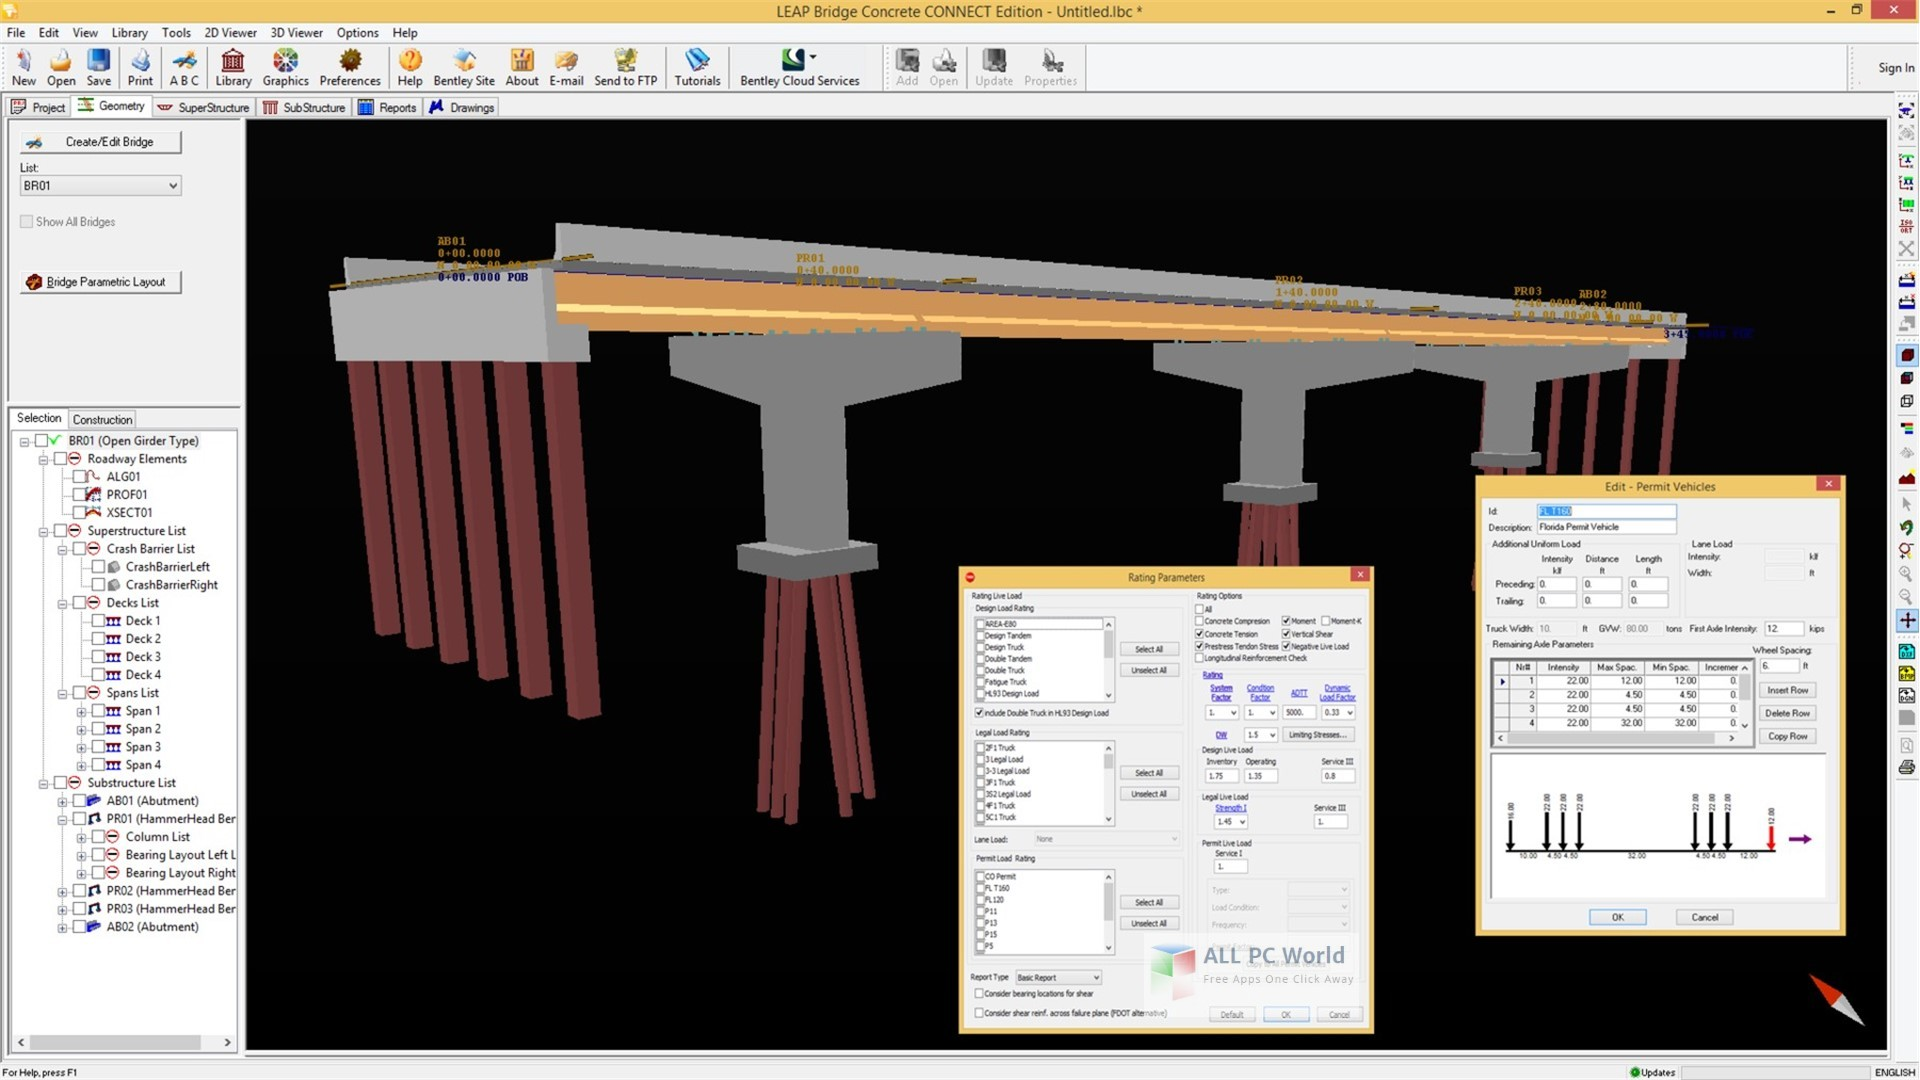 Bentley LEAP Bridge Concrete CONNECT Edition 18.0 Free Download